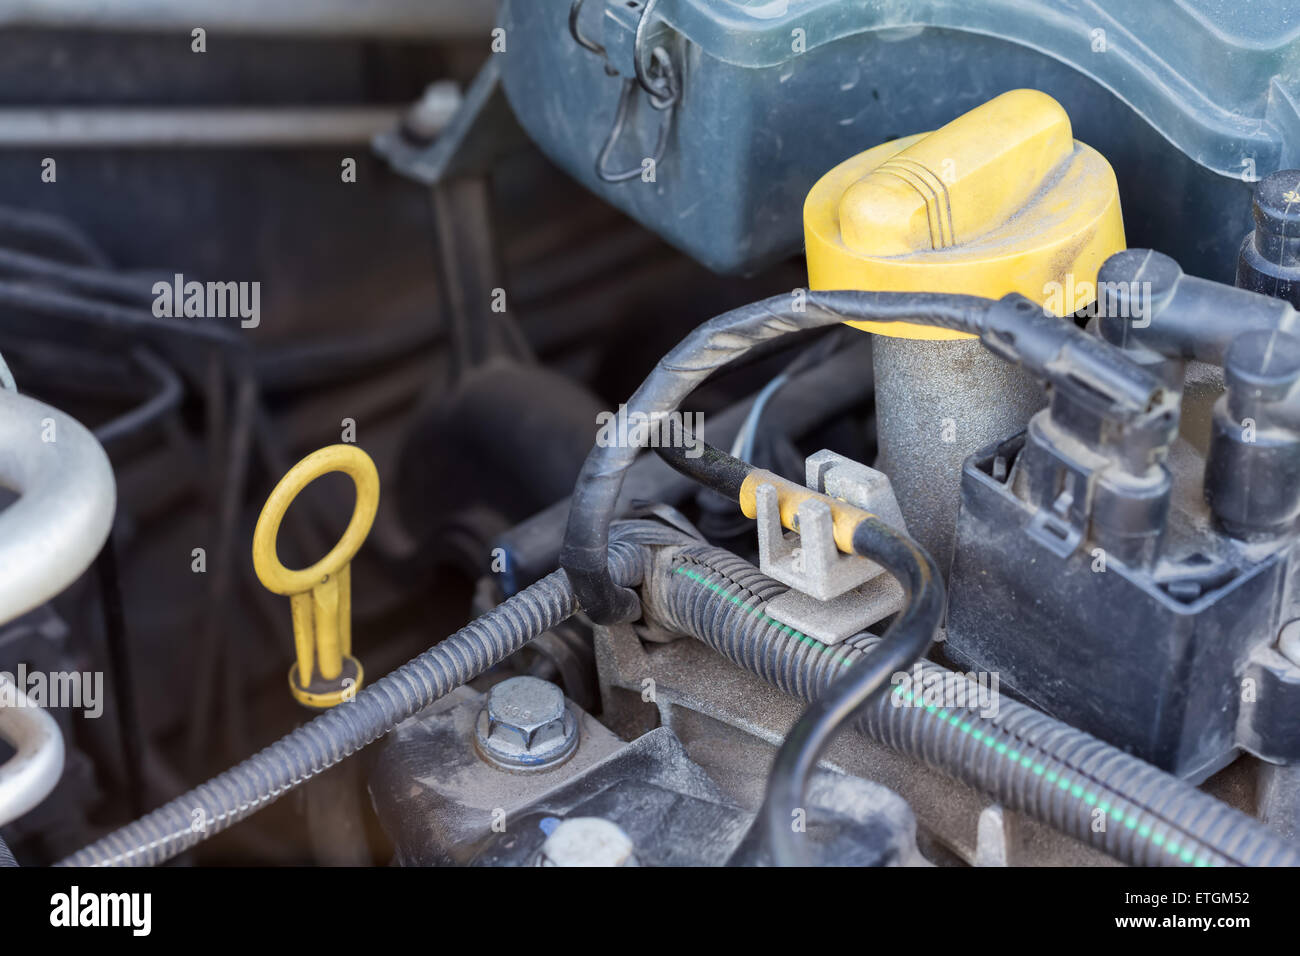 Checking Oil Stockfotos & Checking Oil Bilder - Alamy